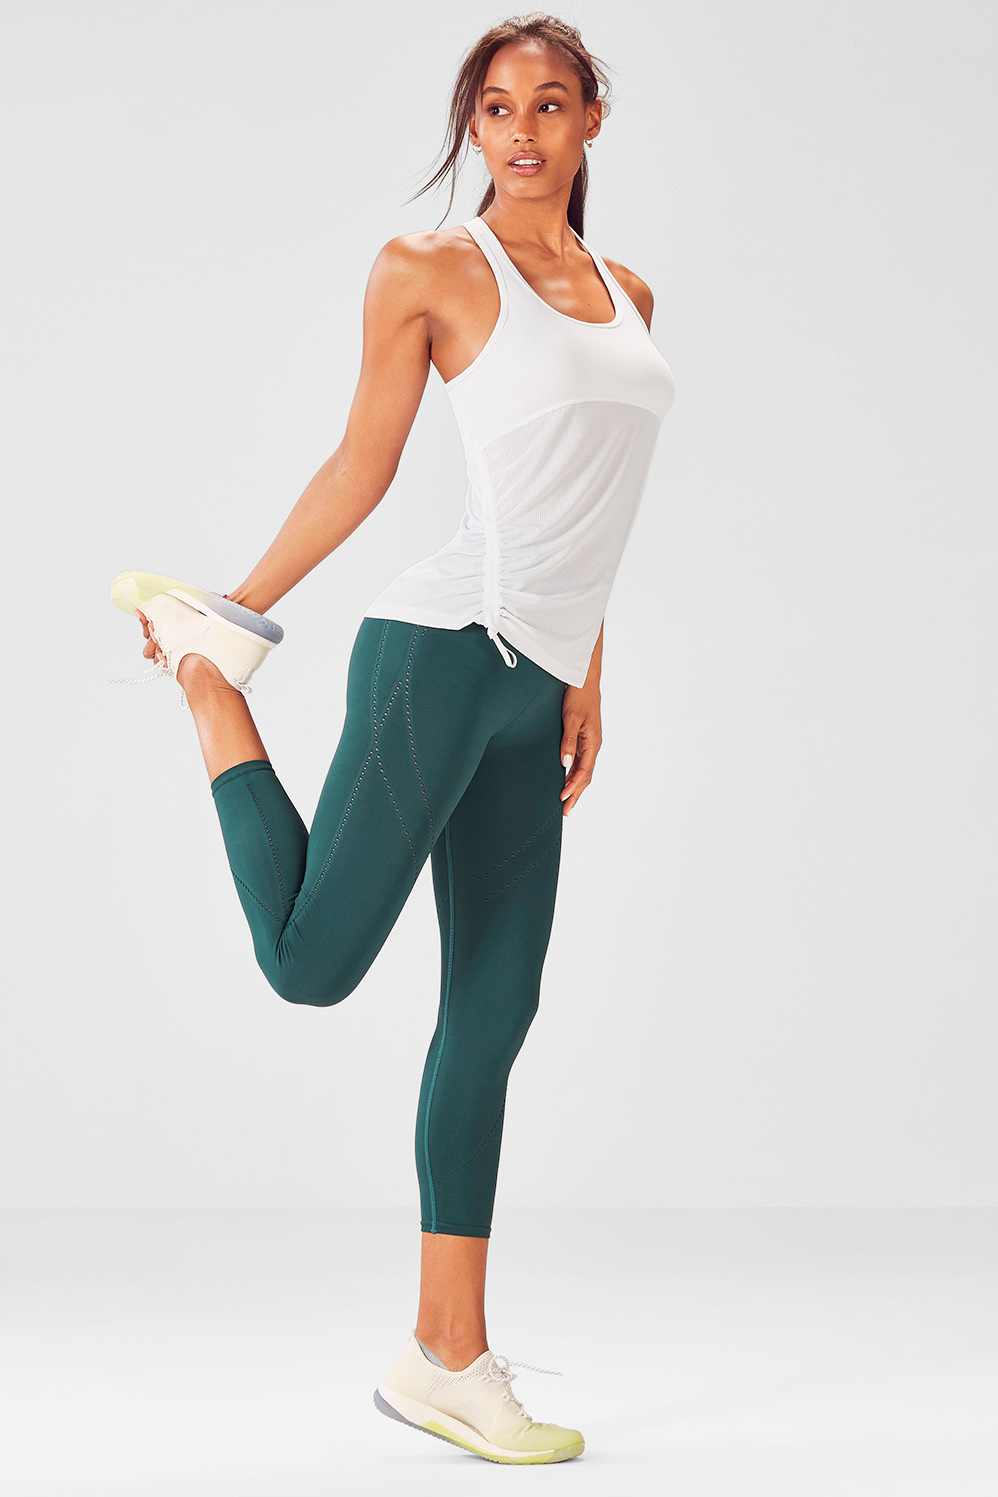 Ropa deportiva mujer ropa deportiva online fabletics outfit 3 solutioingenieria Image collections